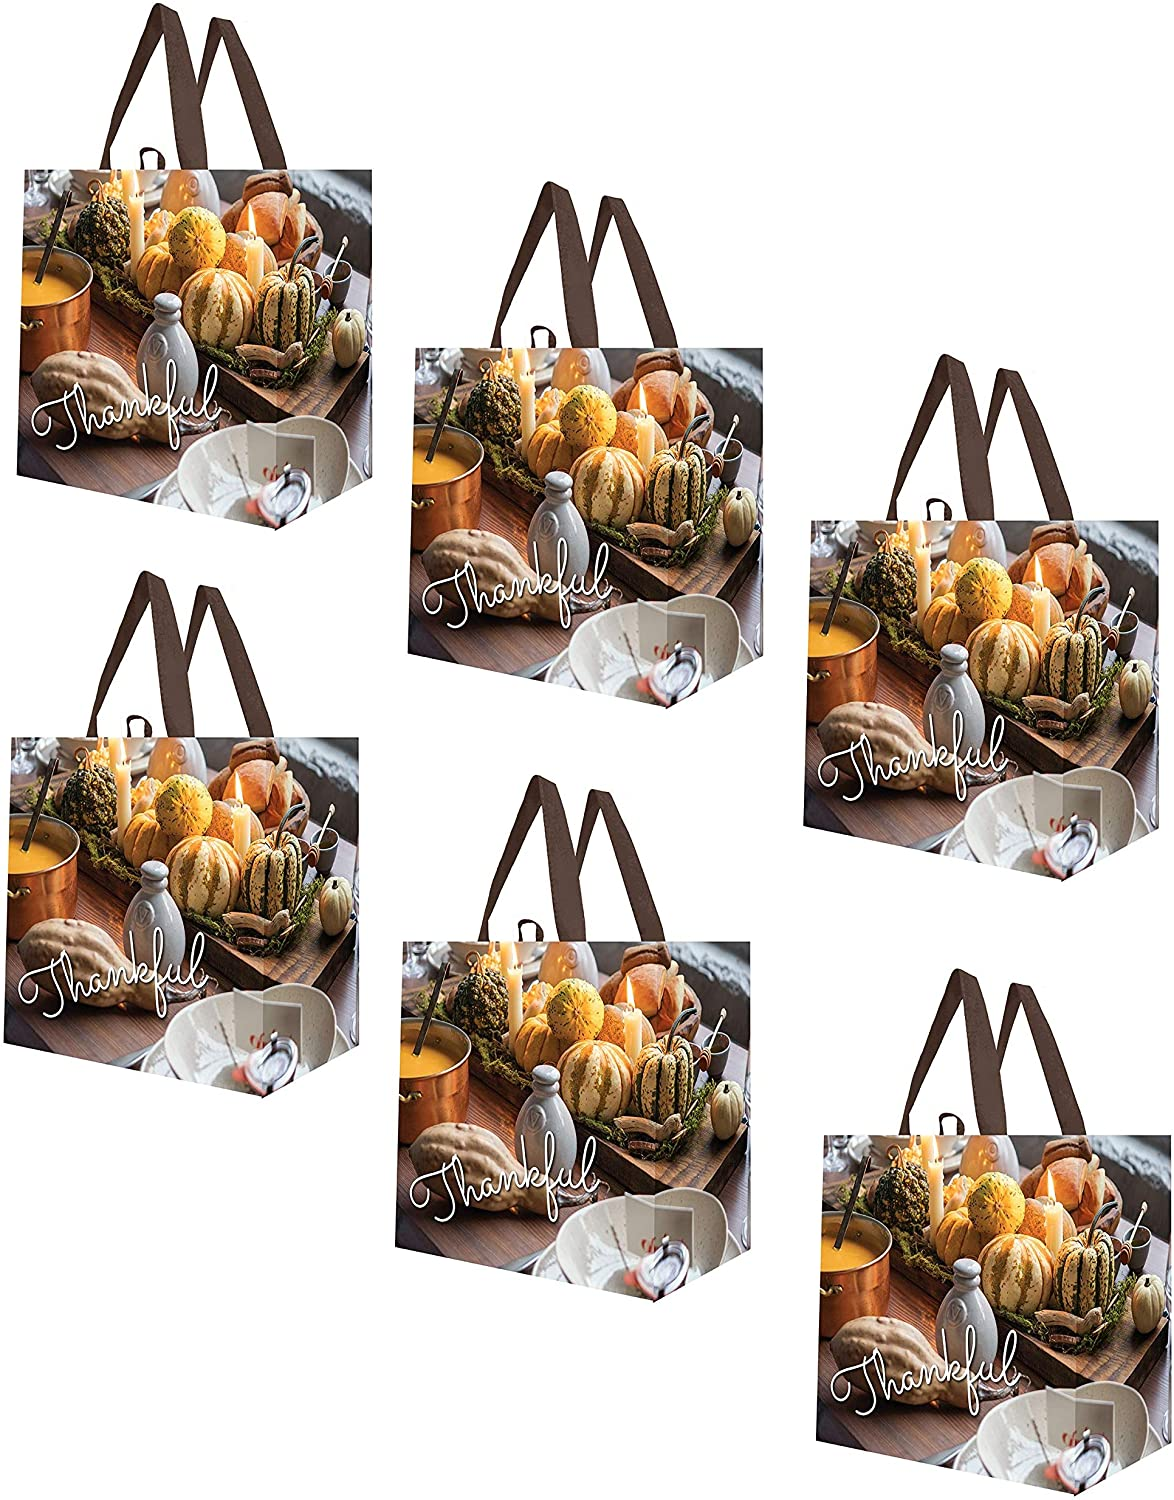 Earthwise Reusable Grocery Shopping Bags Extremely Durable Multi Use Large Stylish Fun Foldable Water-Resistant Totes Design - Fall Thankful (Pack of 6)